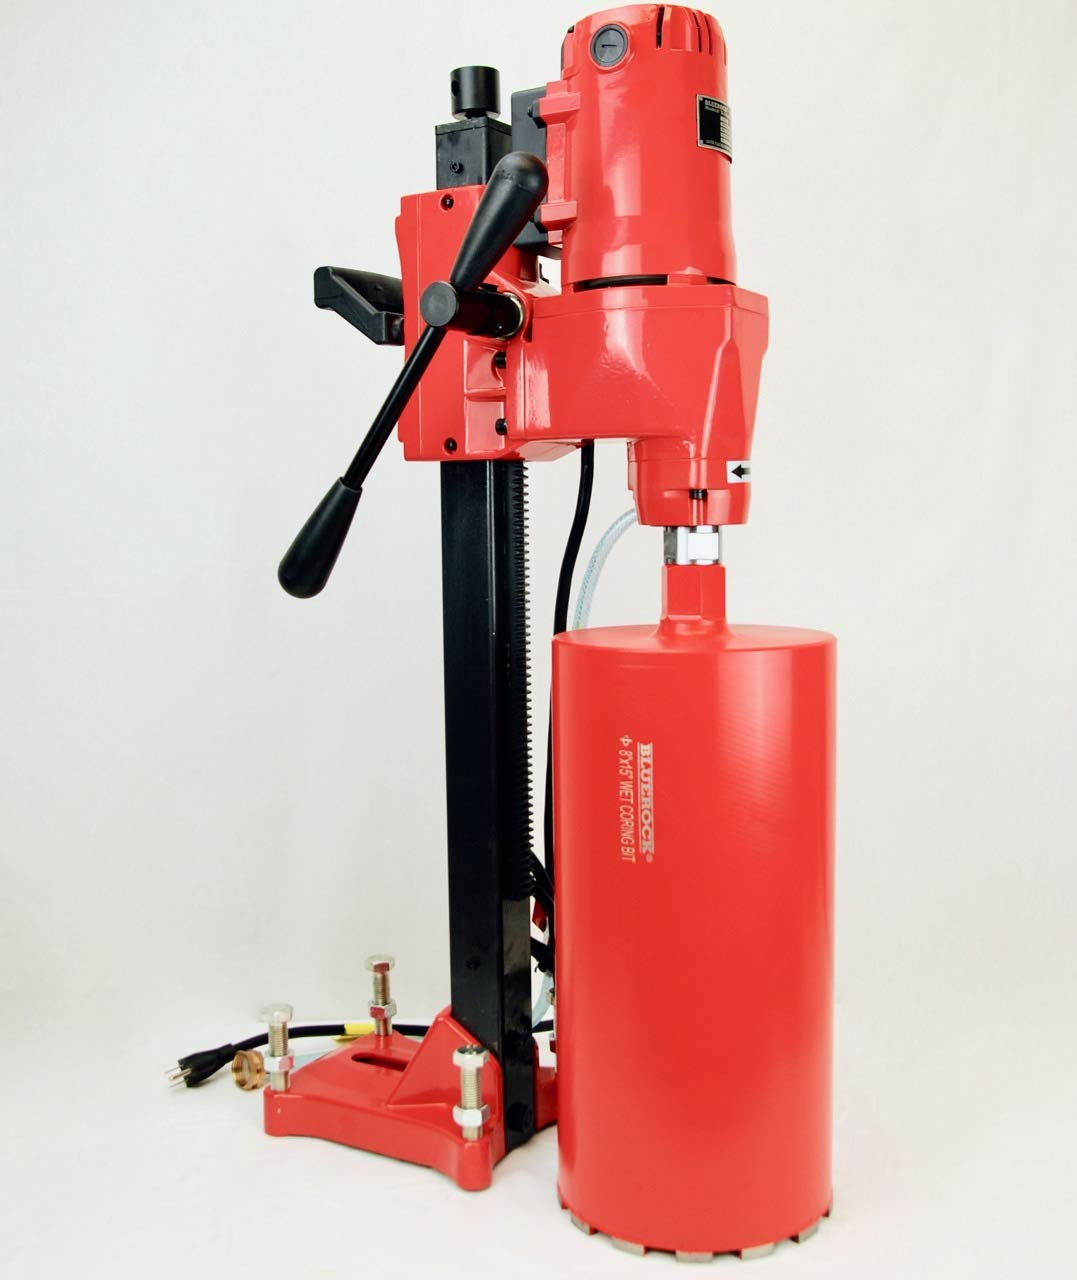 NEW 8'' Z-1 BLUEROCK Tools CORE DRILL W/STAND CONCRETE CORING